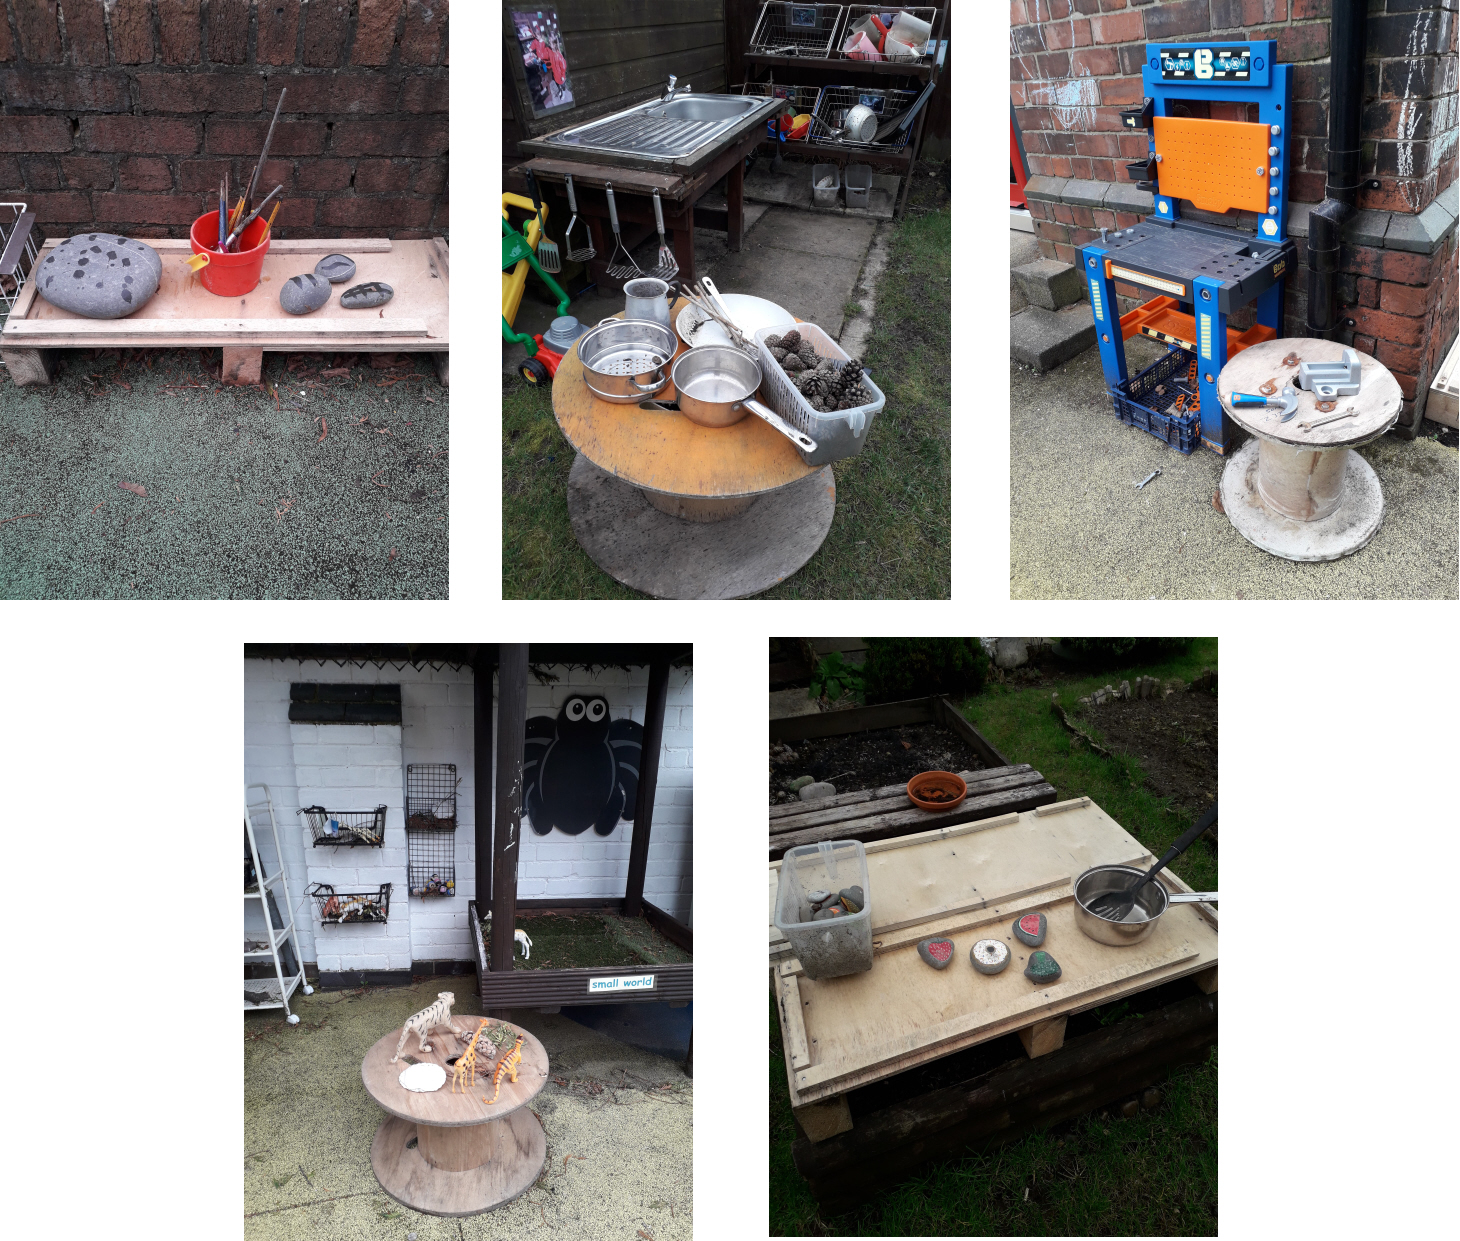 Mud kitchen tables, animal pens, creativity corners and tool stations… what fabulous ways to reuse and repurpose the pallets and drums! A big thank you to those that sent us pictures of their creations – they really do look amazing and a huge well done to Wayne Draper, for thinking outside of the wooden box and making some community projects possible all the while preventing unnecessary landfill waste!